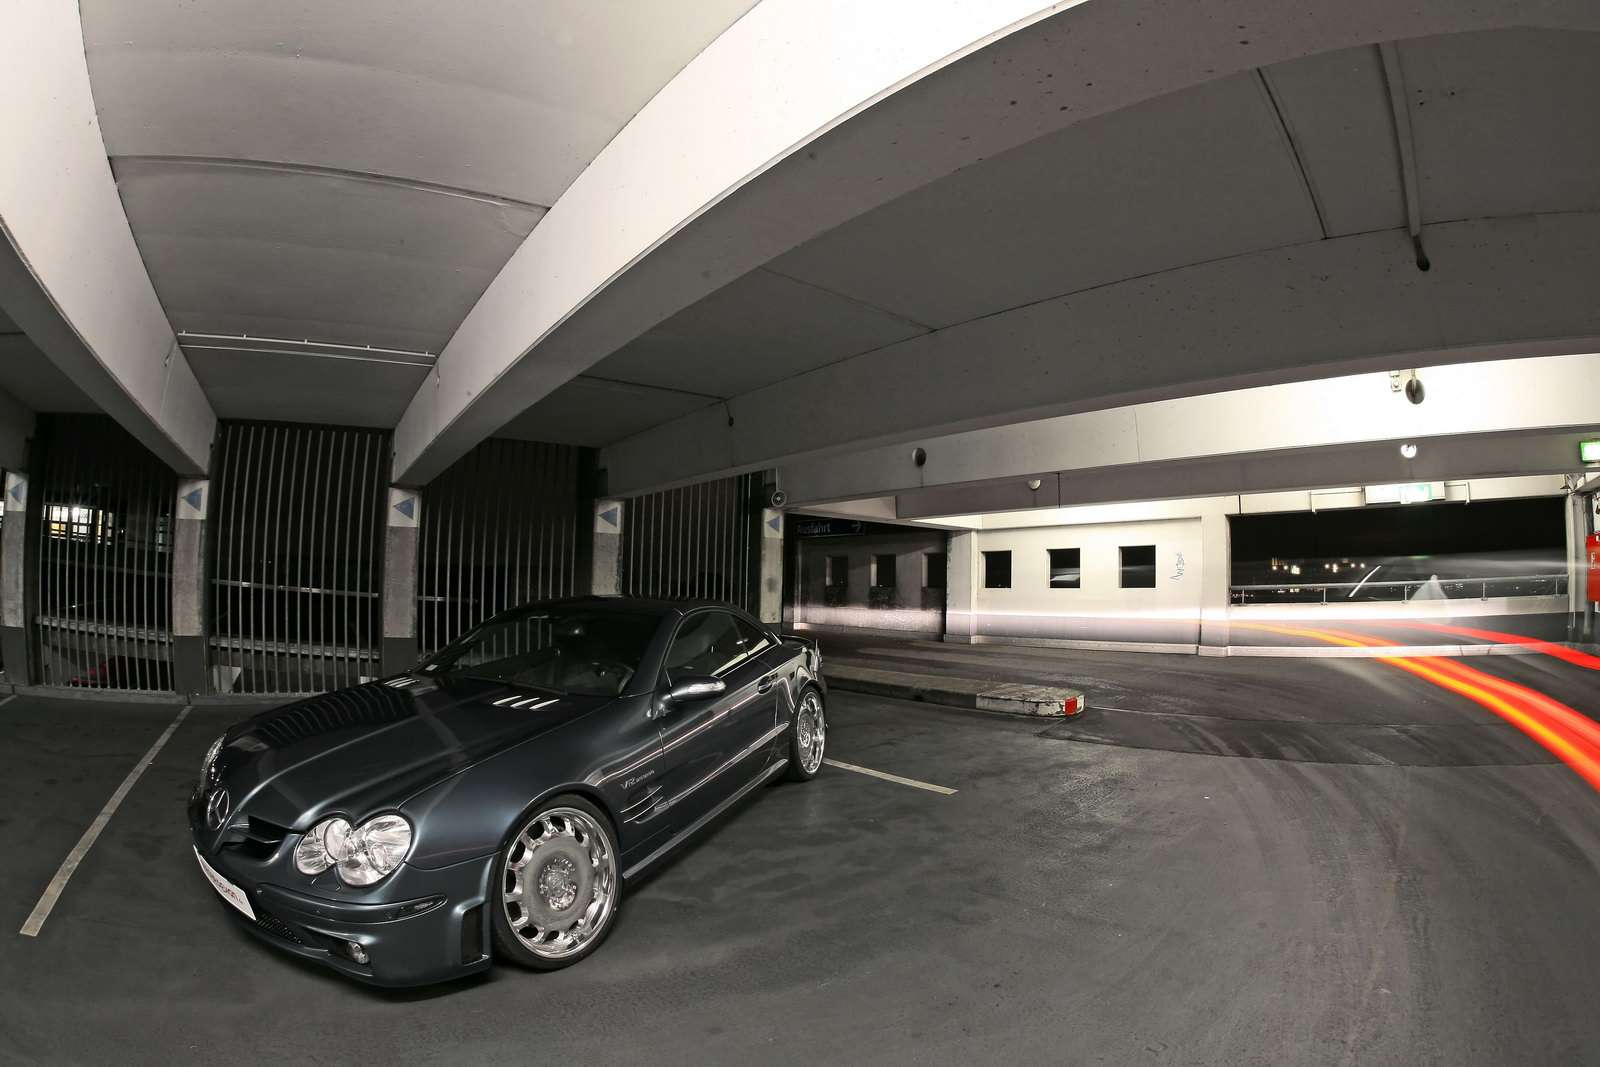 Mercedes-Benz SL 65 AMG mr car design luty 2011